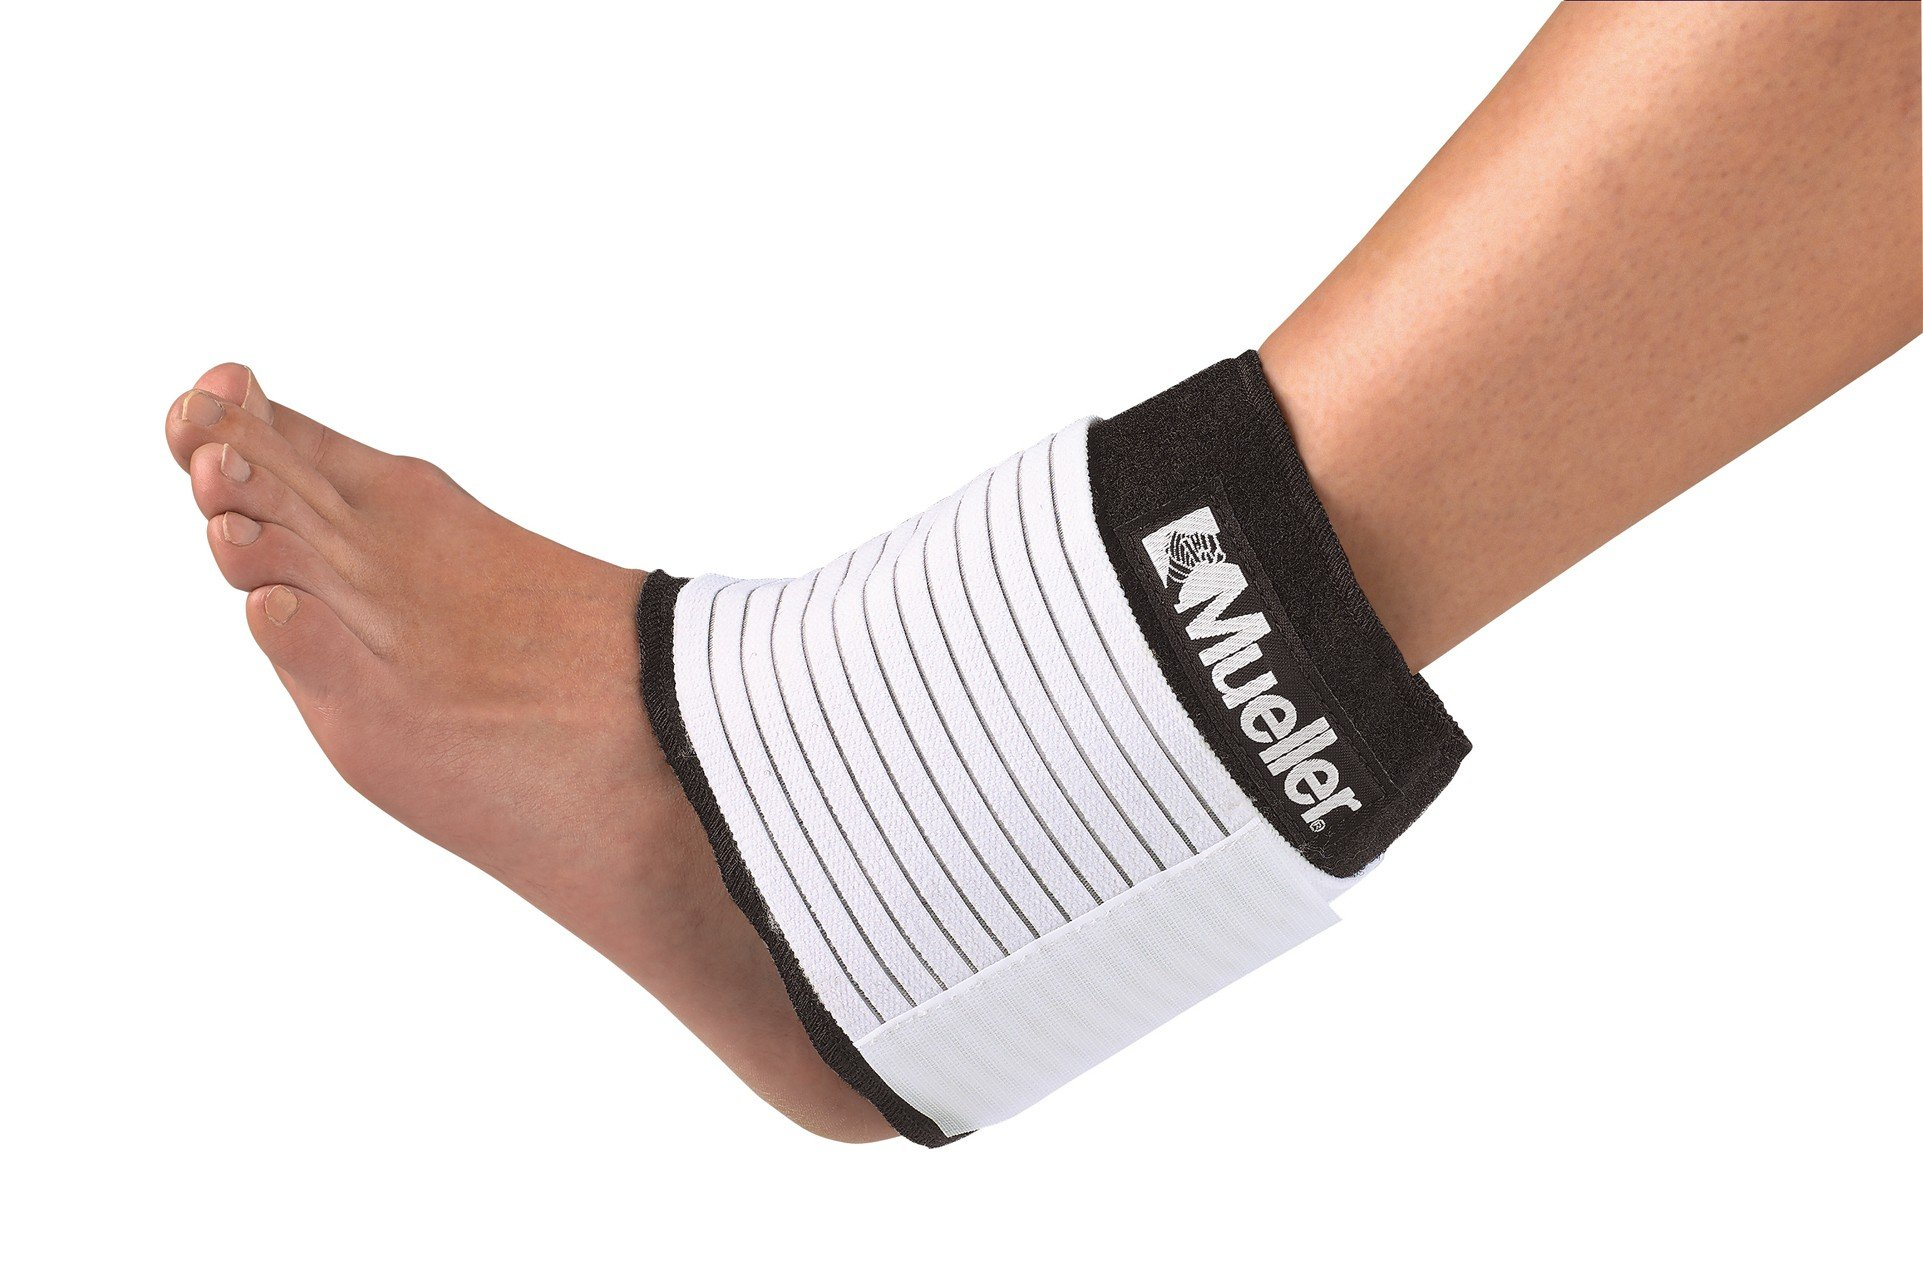 Mueller Cold/hot Wrap, Elastic, Black, One Size by MUELLER